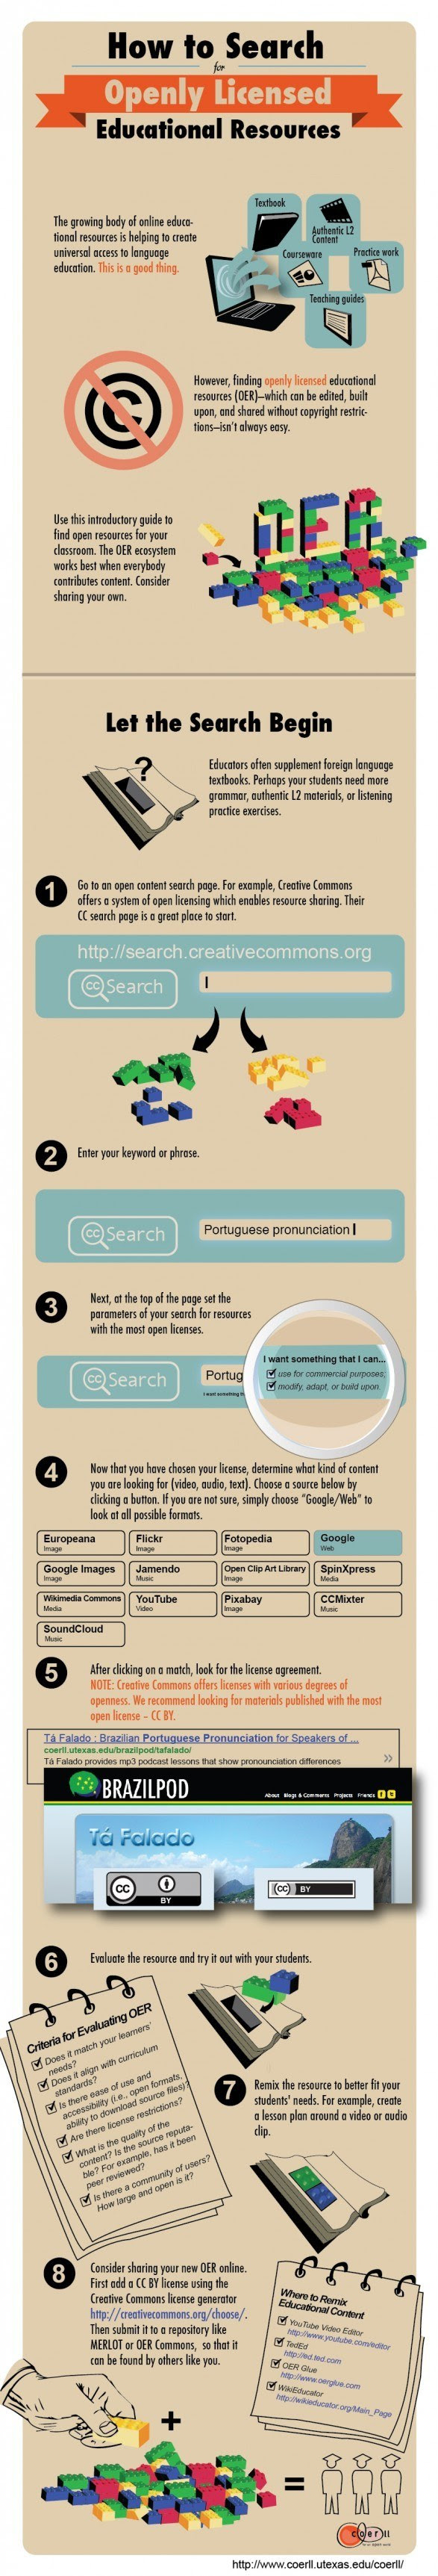 How-to-Search-for-Open-Educational-Resources-Infographic